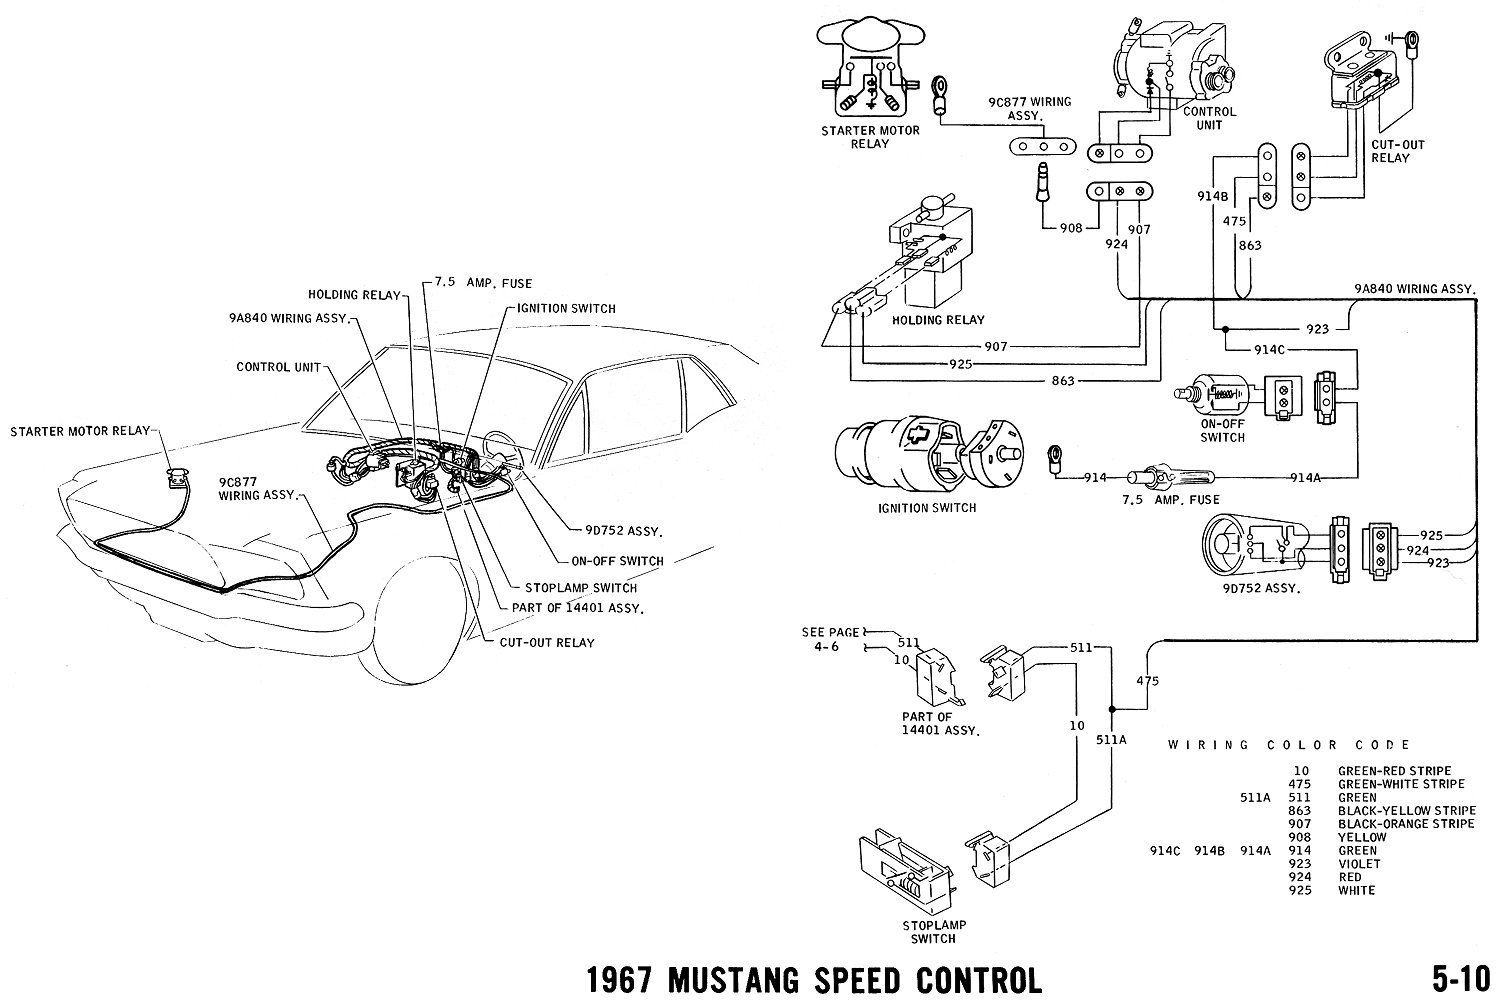 1967 Ford Mustang Engine Wiring Diagram Opinions About 1975 Ignition And Vacuum Diagrams Average Joe Restoration Rh Averagejoerestoration Com 1965